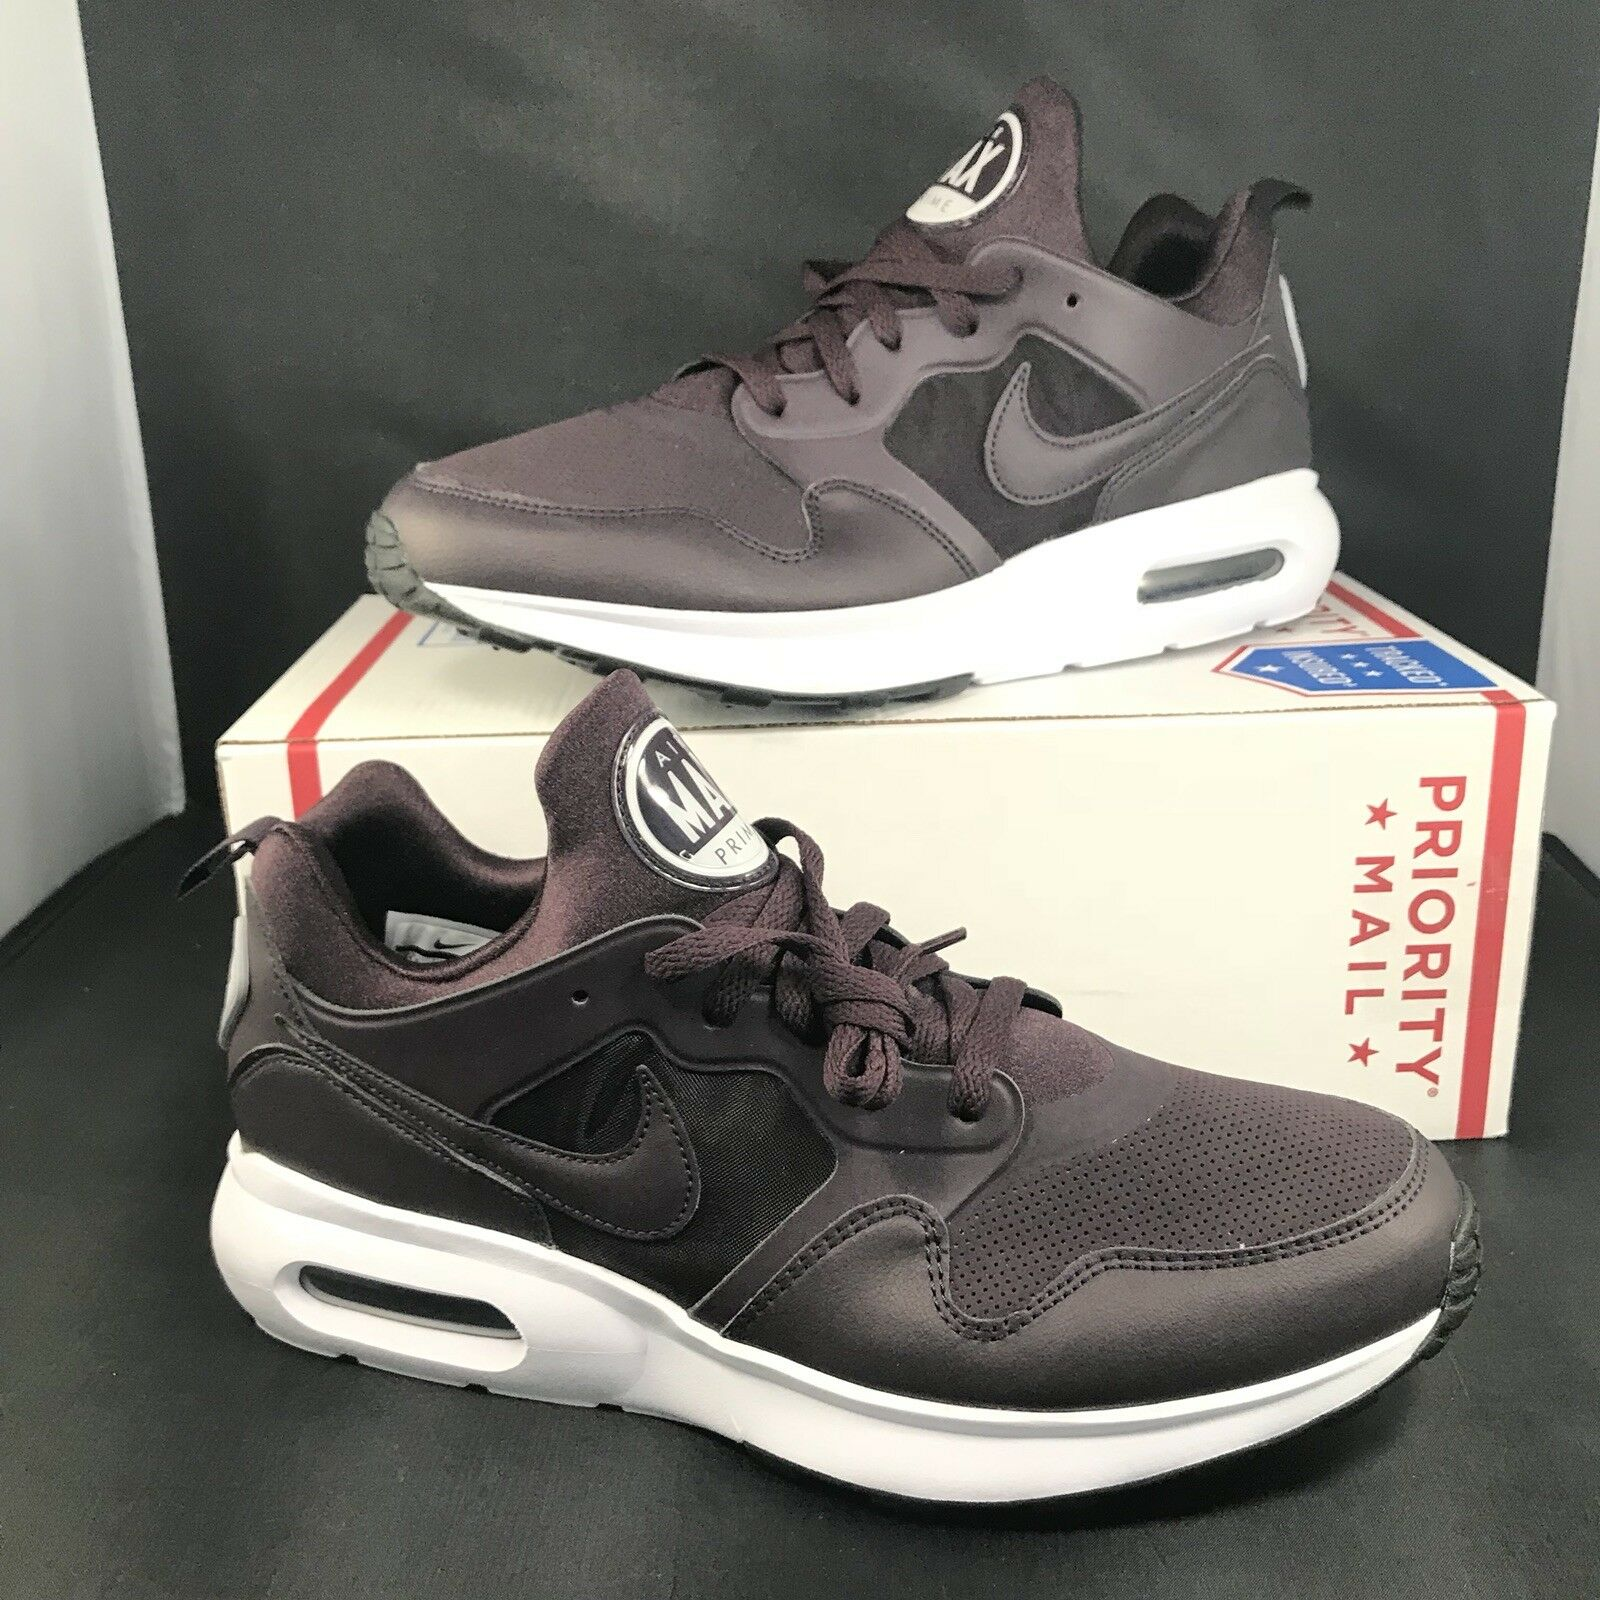 Nike Air Max Prime SL Mens Running shoes 12 Port Wine 876069 600